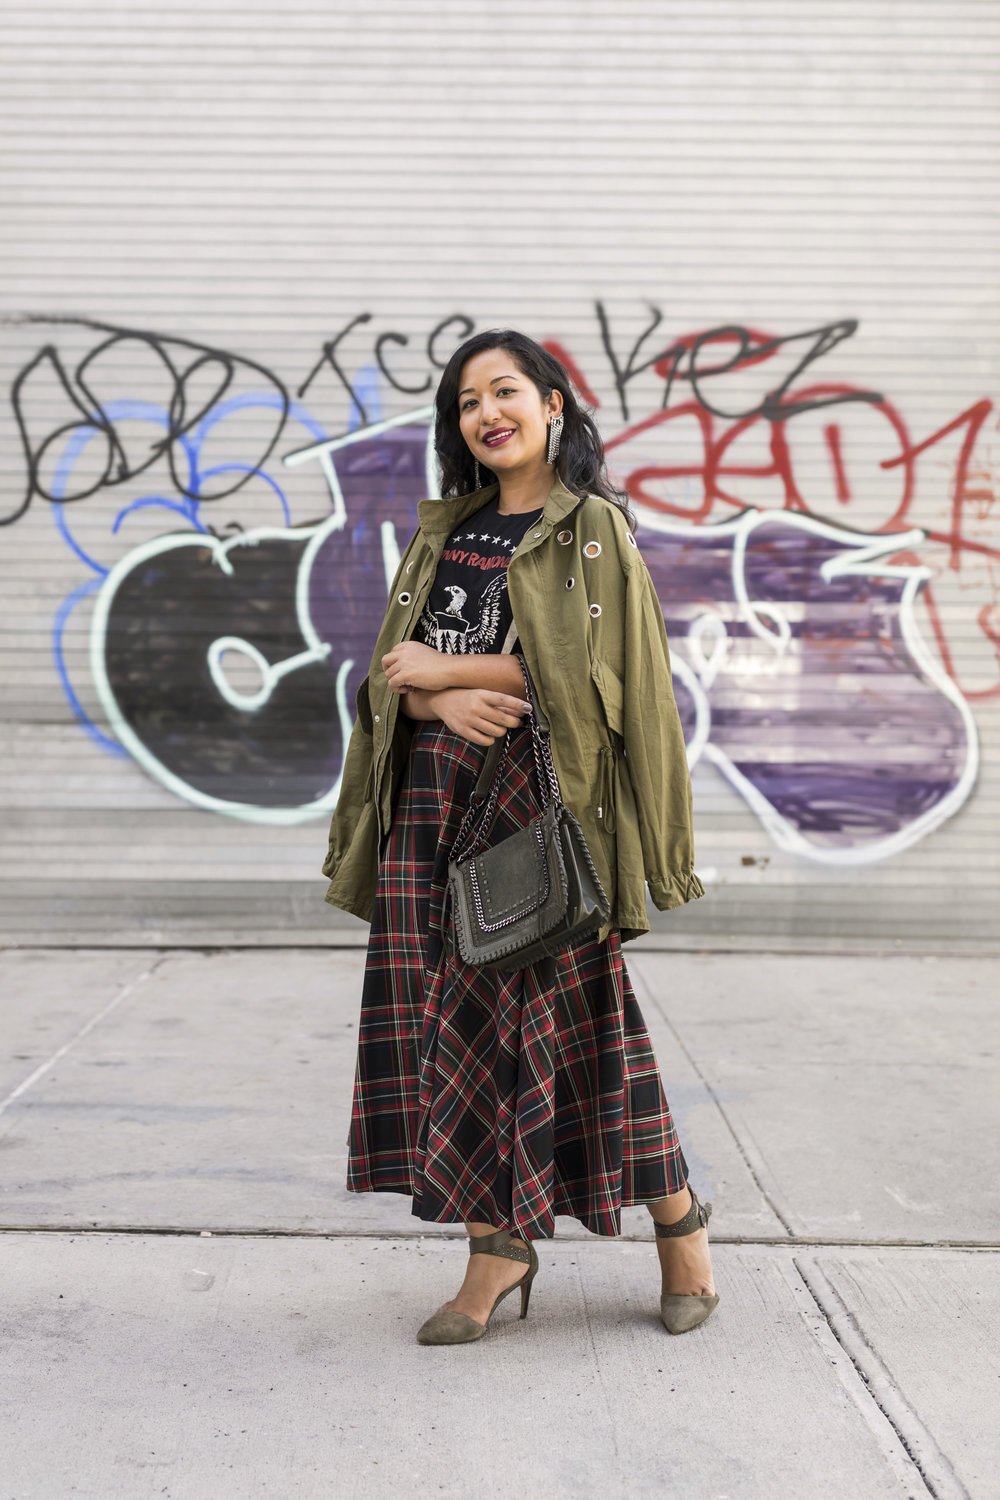 Krity S x Fall Trends x Plaid with a Punk Twist3.jpg